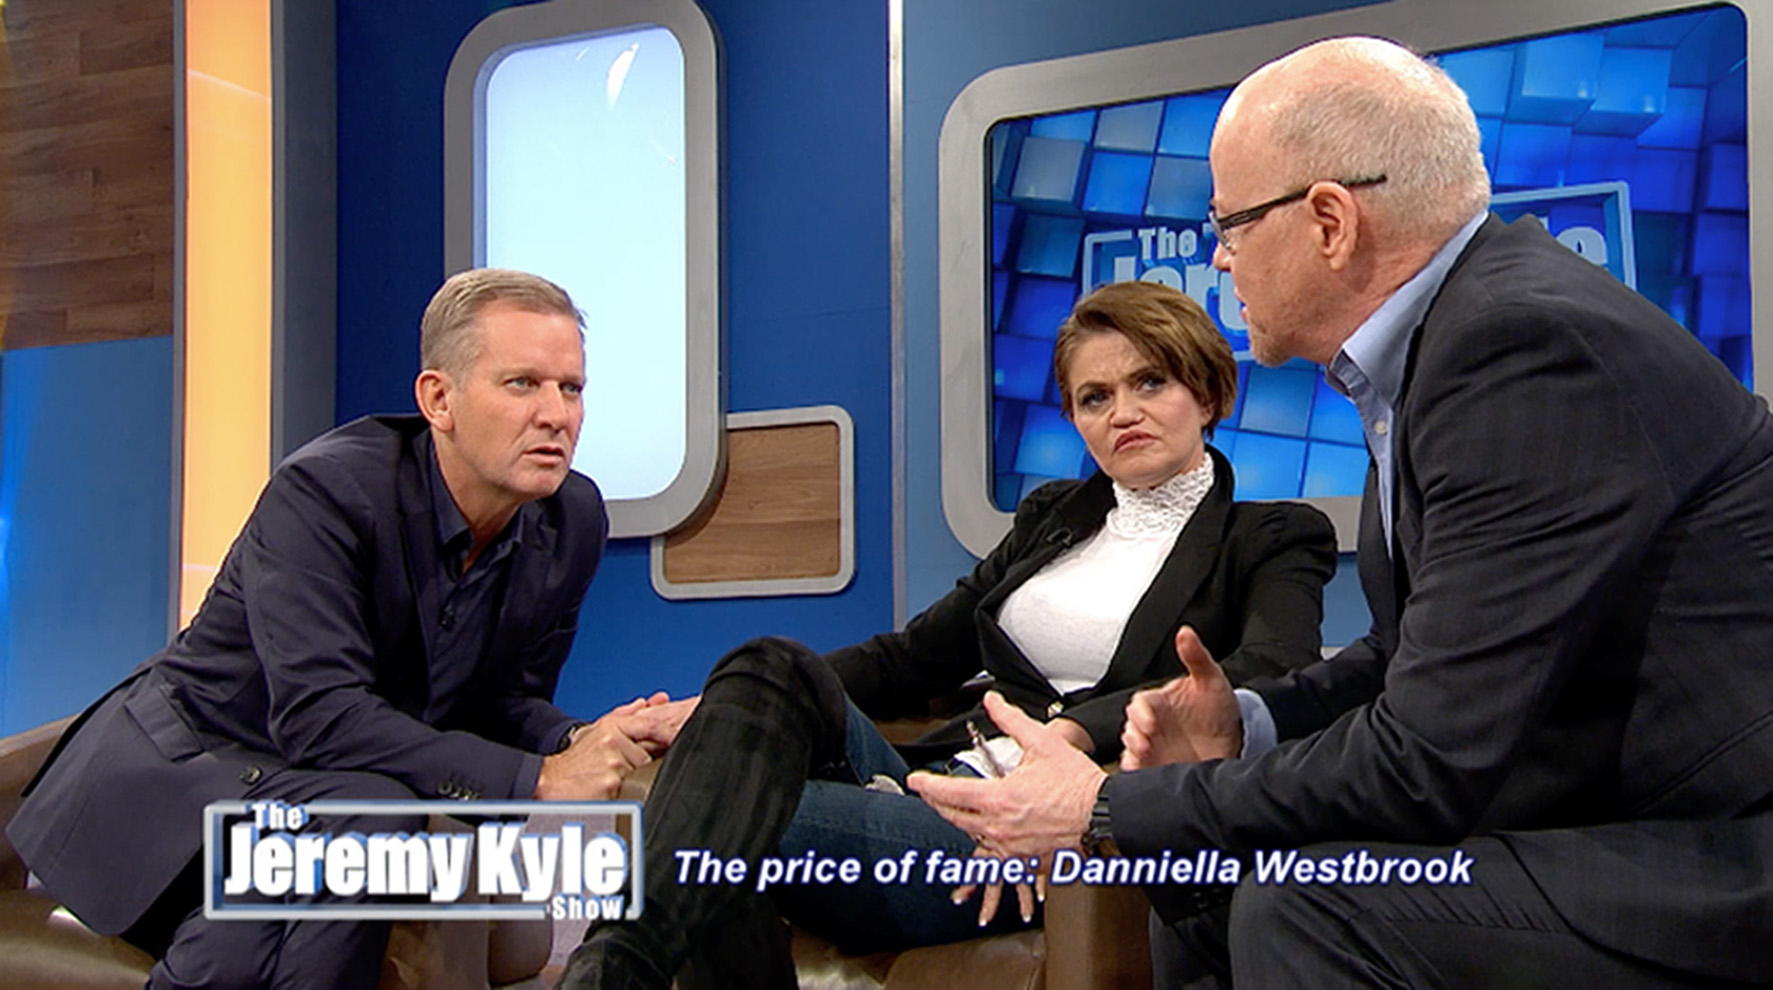 ITV handout screengrab of former EastEnders star Danniella Westbrook who admitted she was still taking cocaine every week during an appearance on The Jeremy Kyle Show. PRESS ASSOCIATION Photo. Issue date: Friday February 8, 2019. See PA story SHOWBIZ Wes